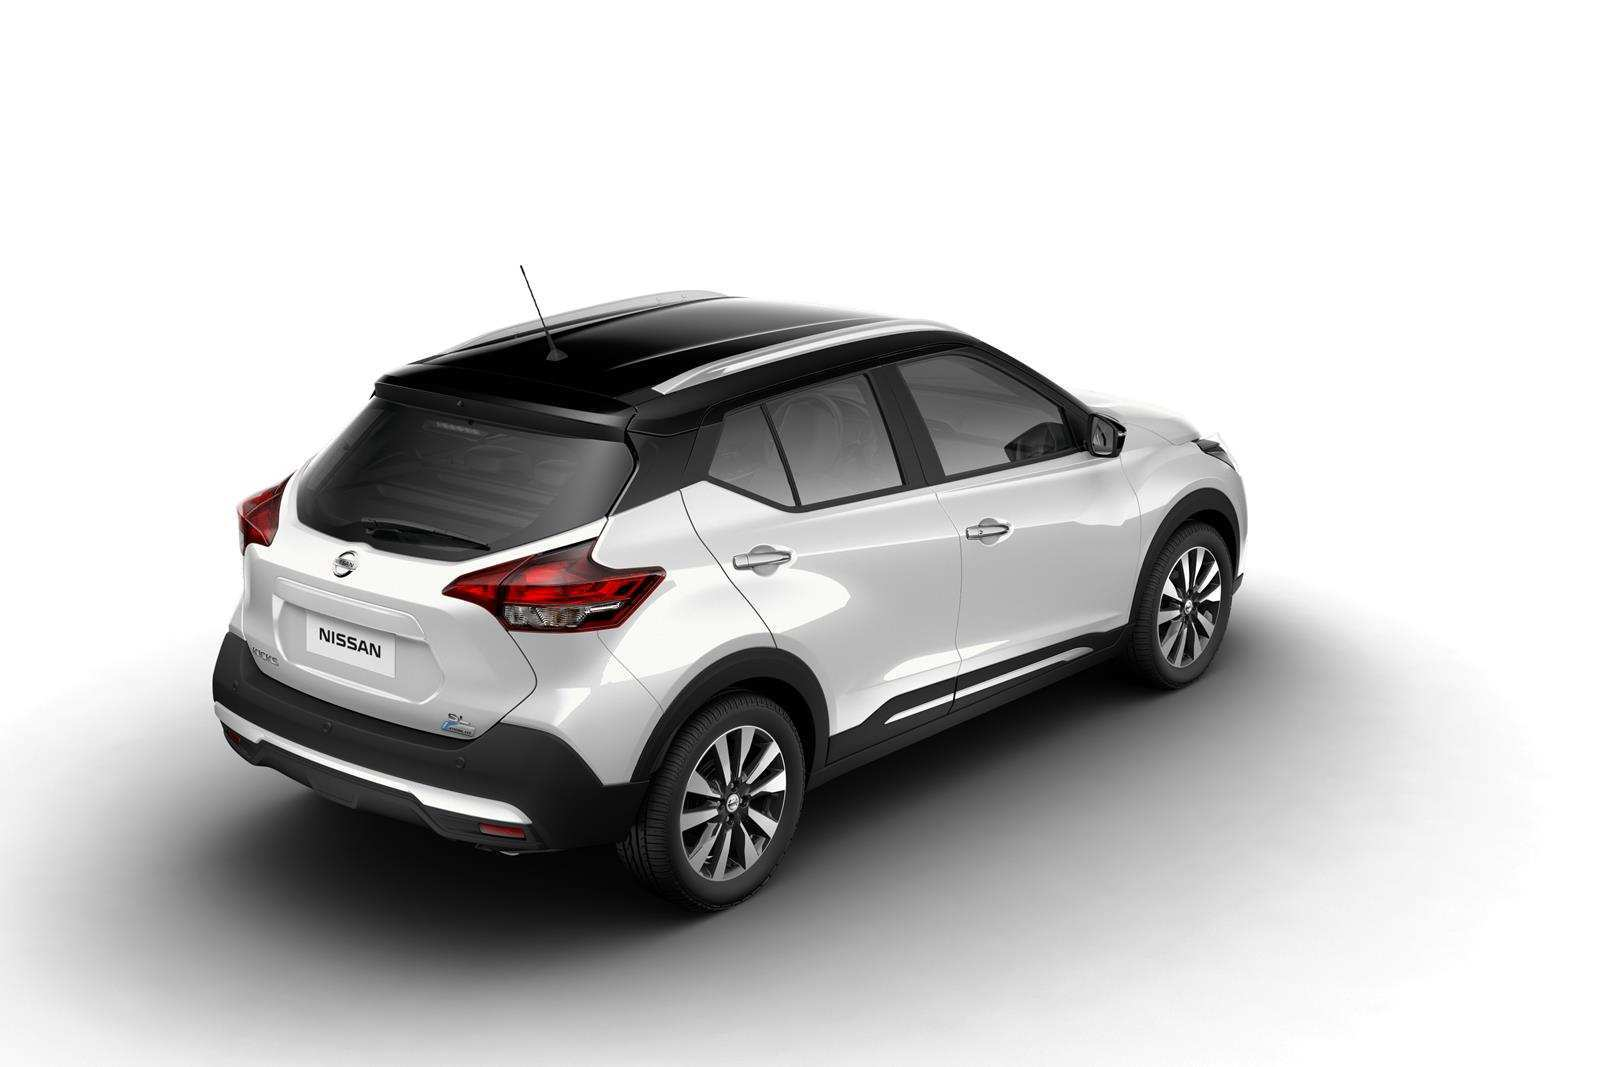 78 New Nissan Kicks 2019 Mexico Images